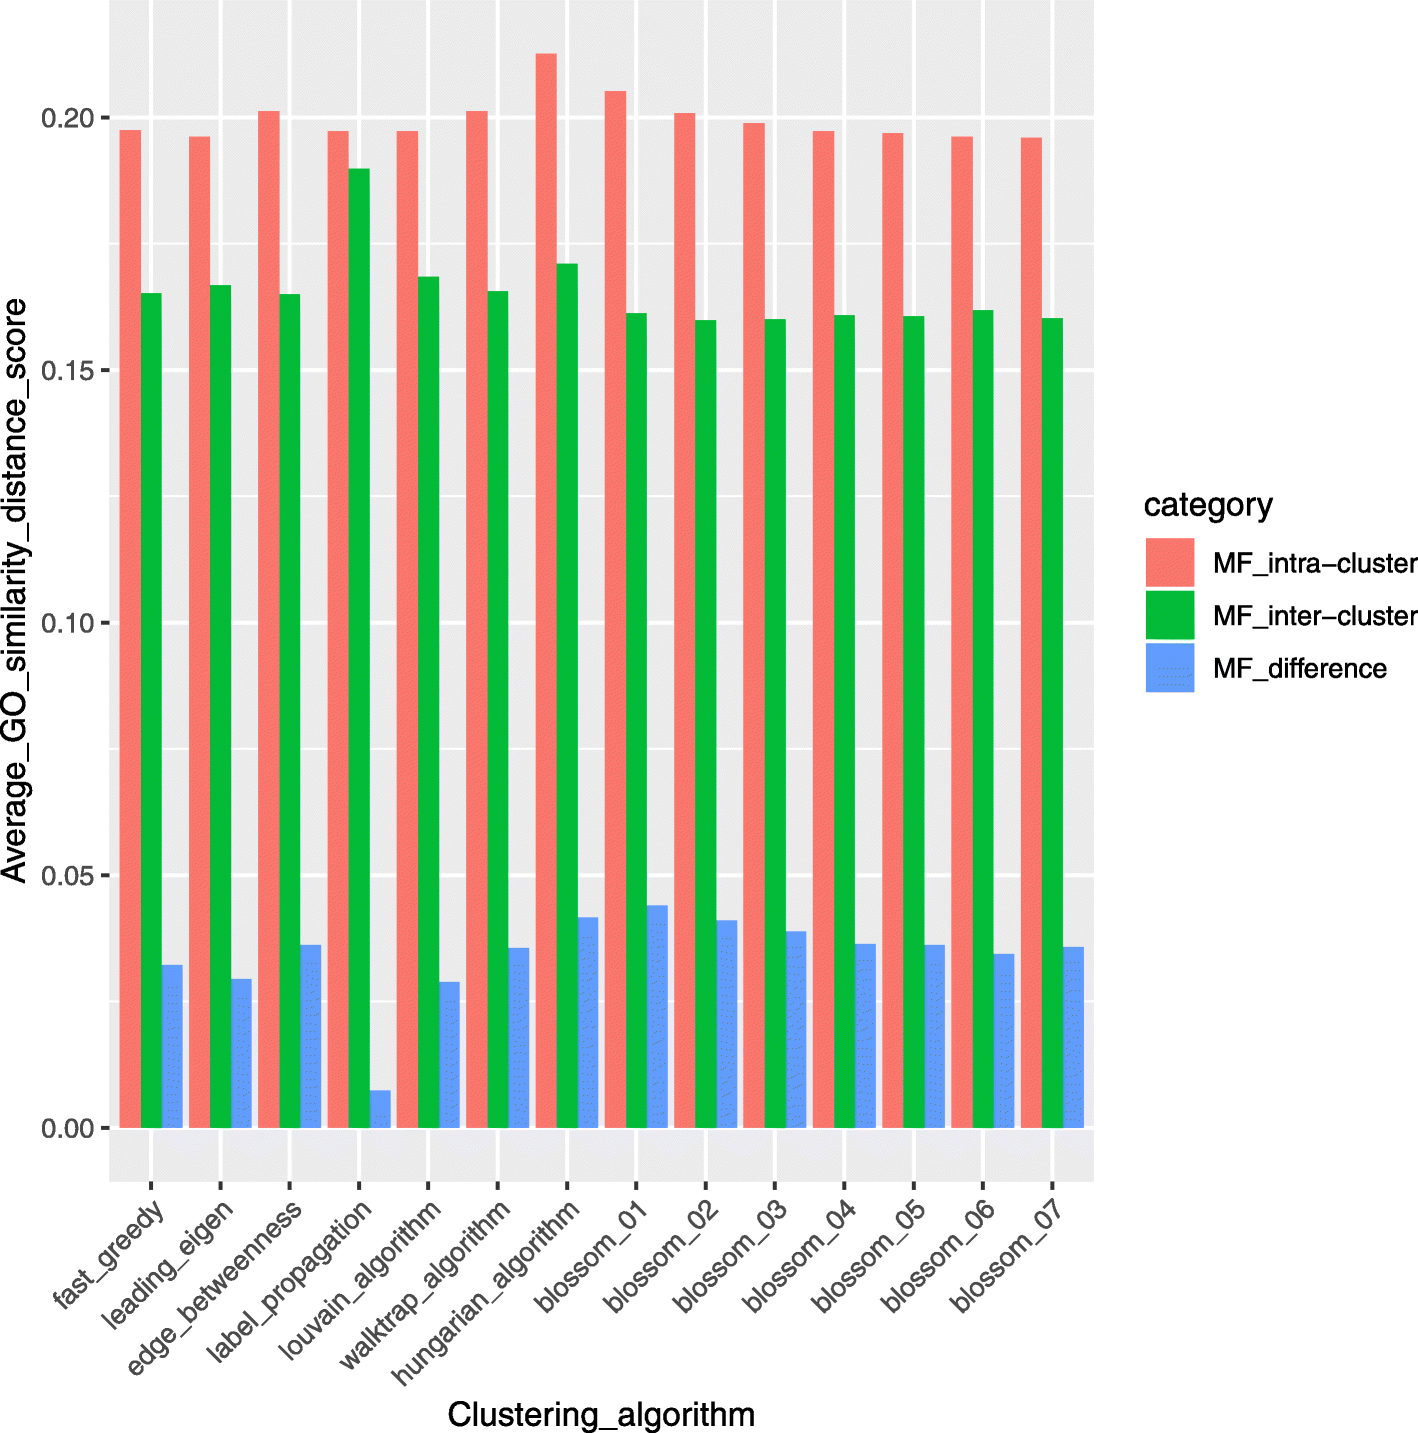 Clustering analysis of microRNA and mRNA expression data